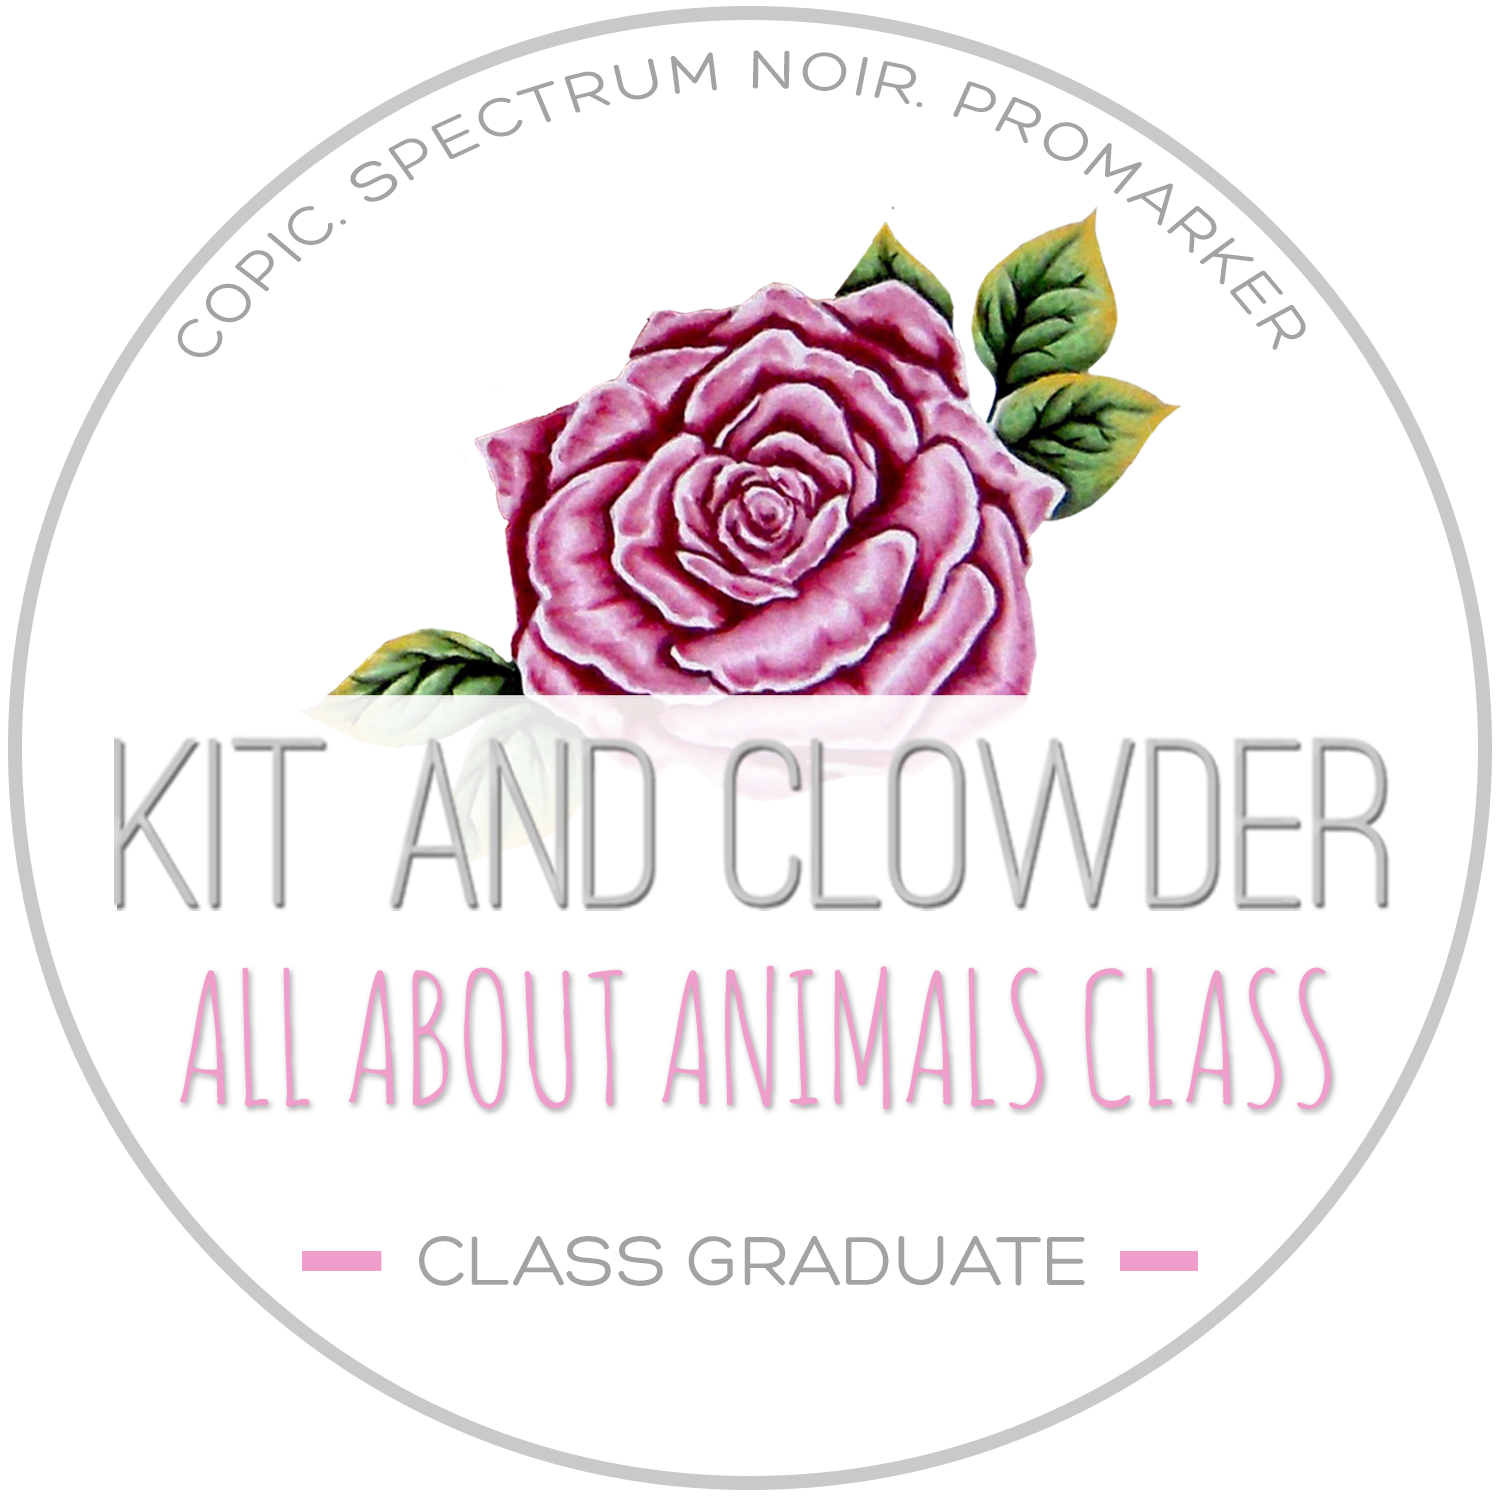 All About Animals Graduate